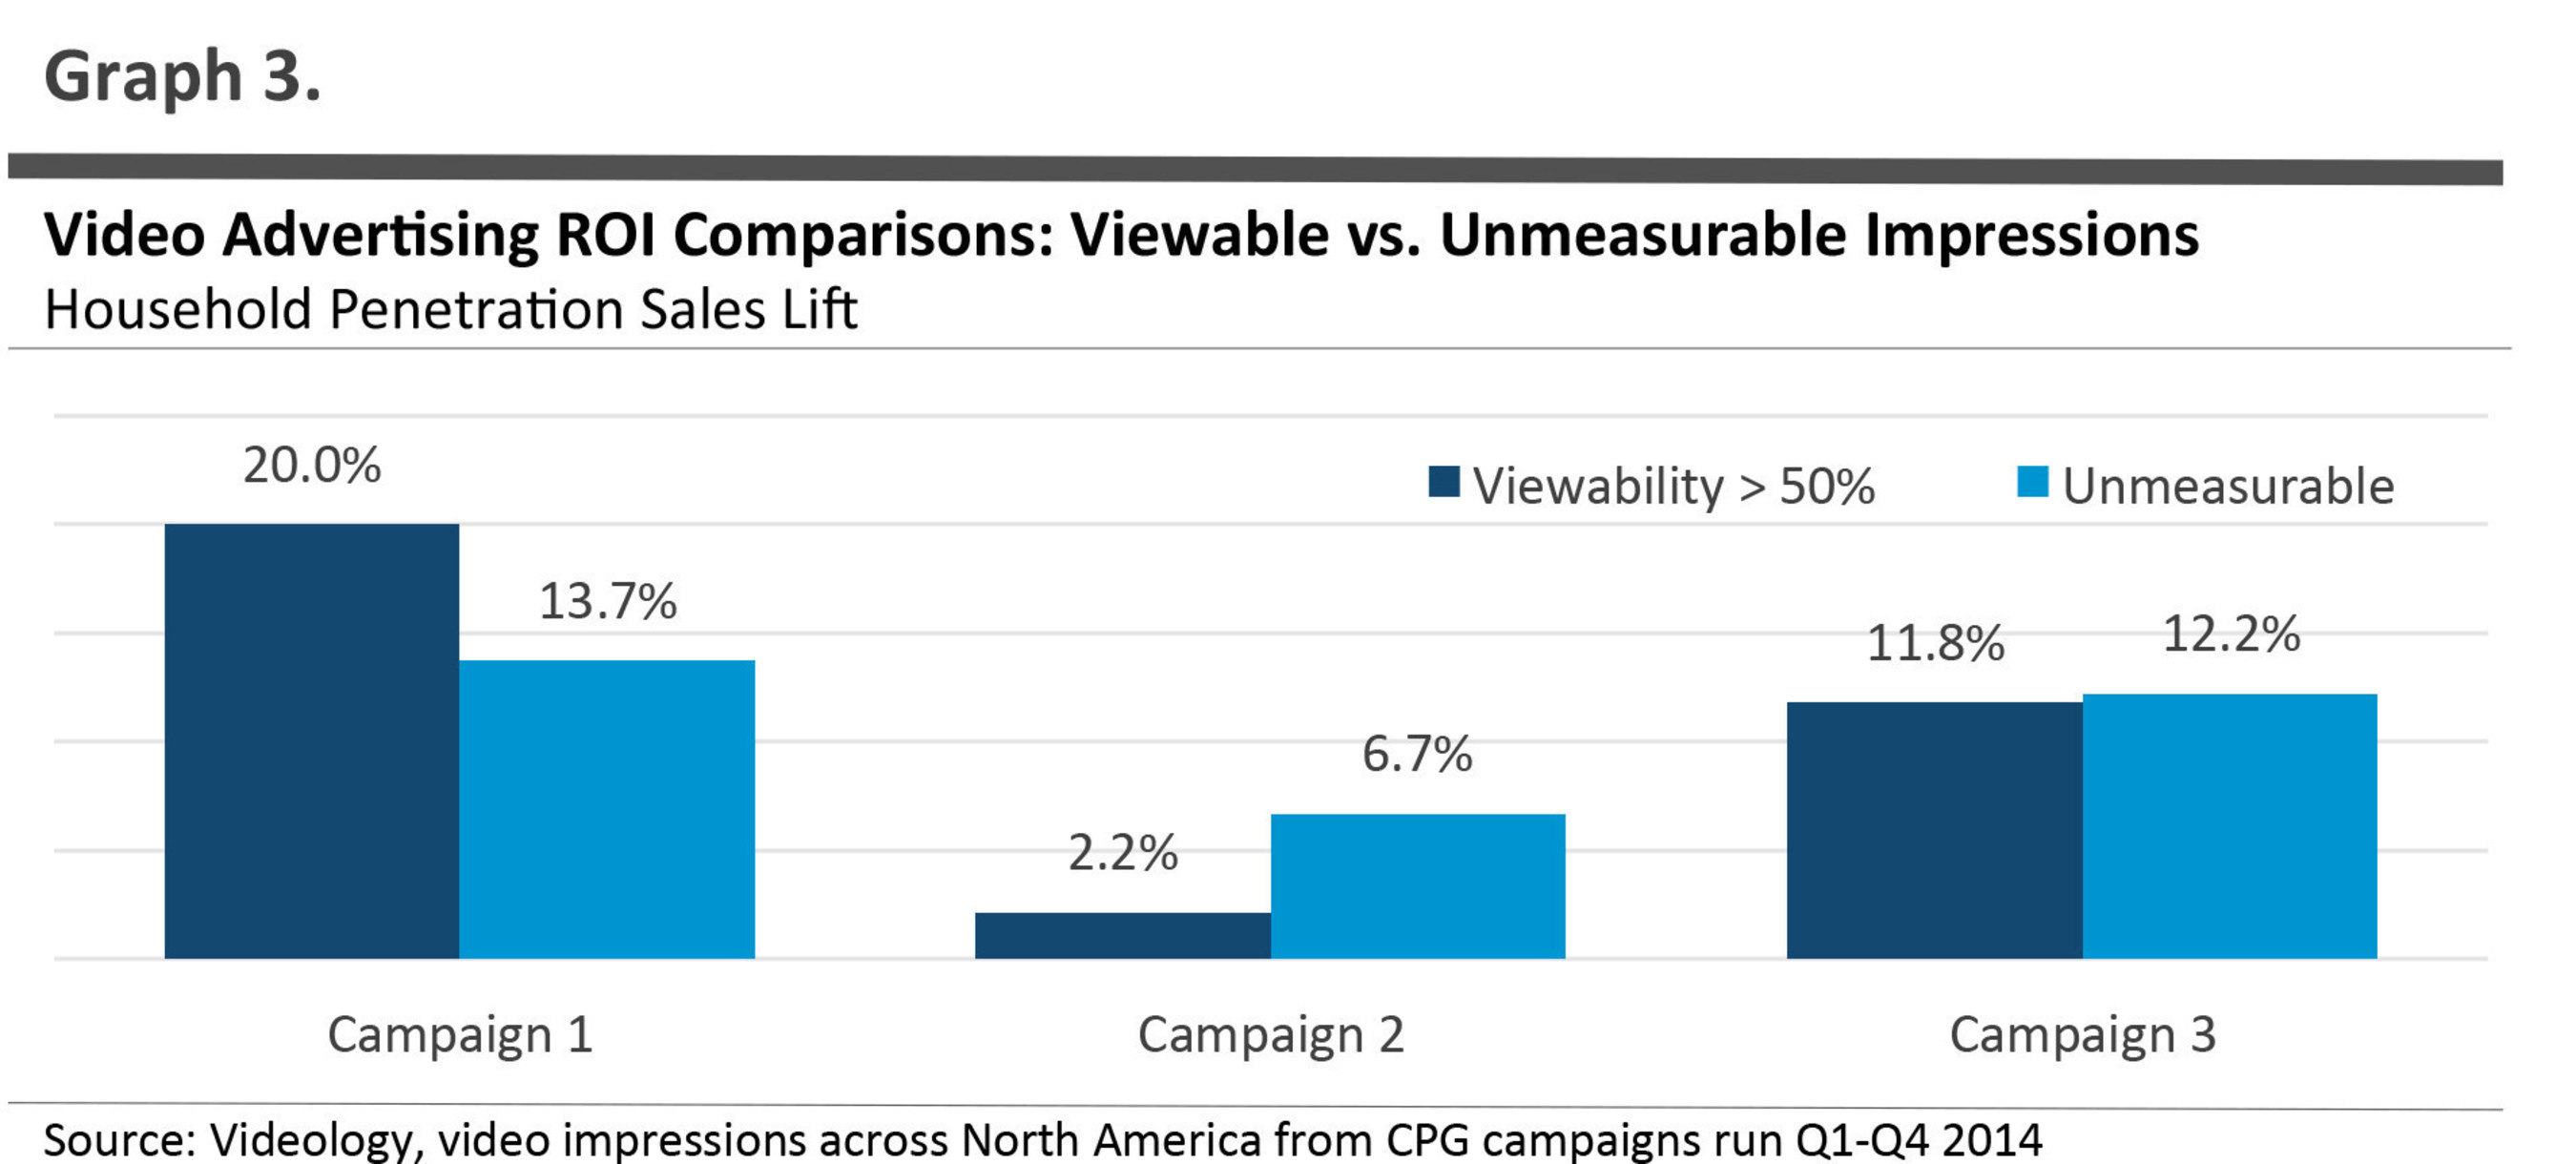 Inventory that cannot be measured for viewability can perform on par or better than campaigns with above average viewability ratings in terms of driving offline sales.